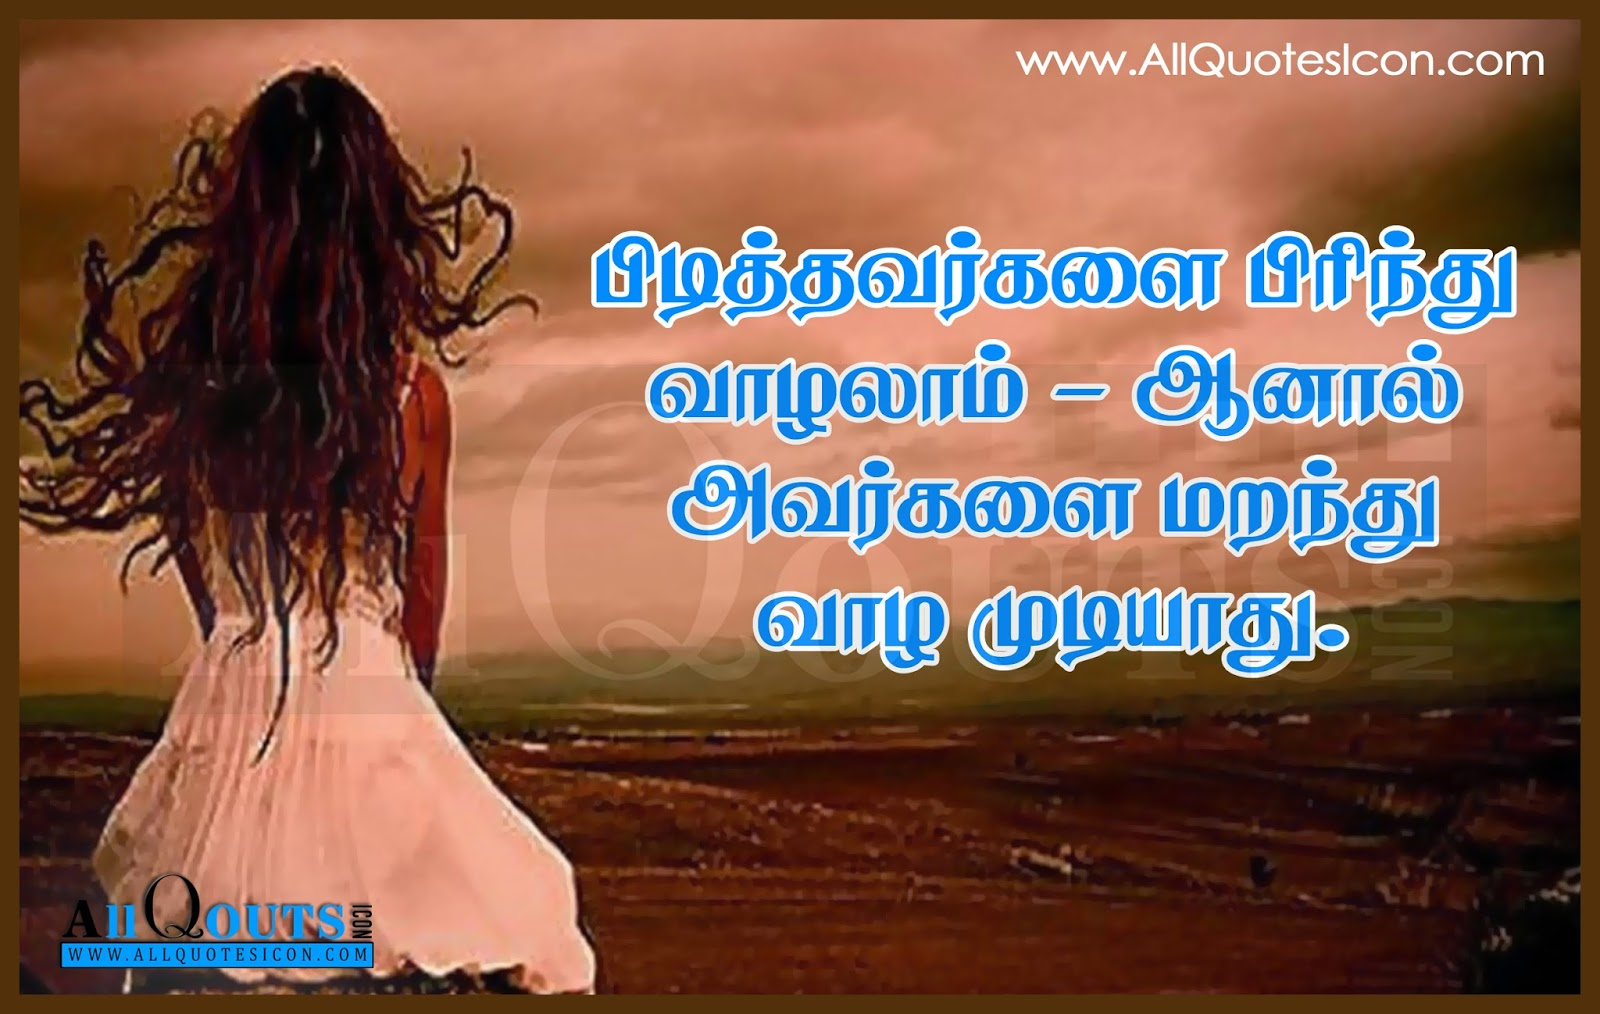 Best Feelings and Quotes in Tamil | www.AllQuotesIcon.com ...